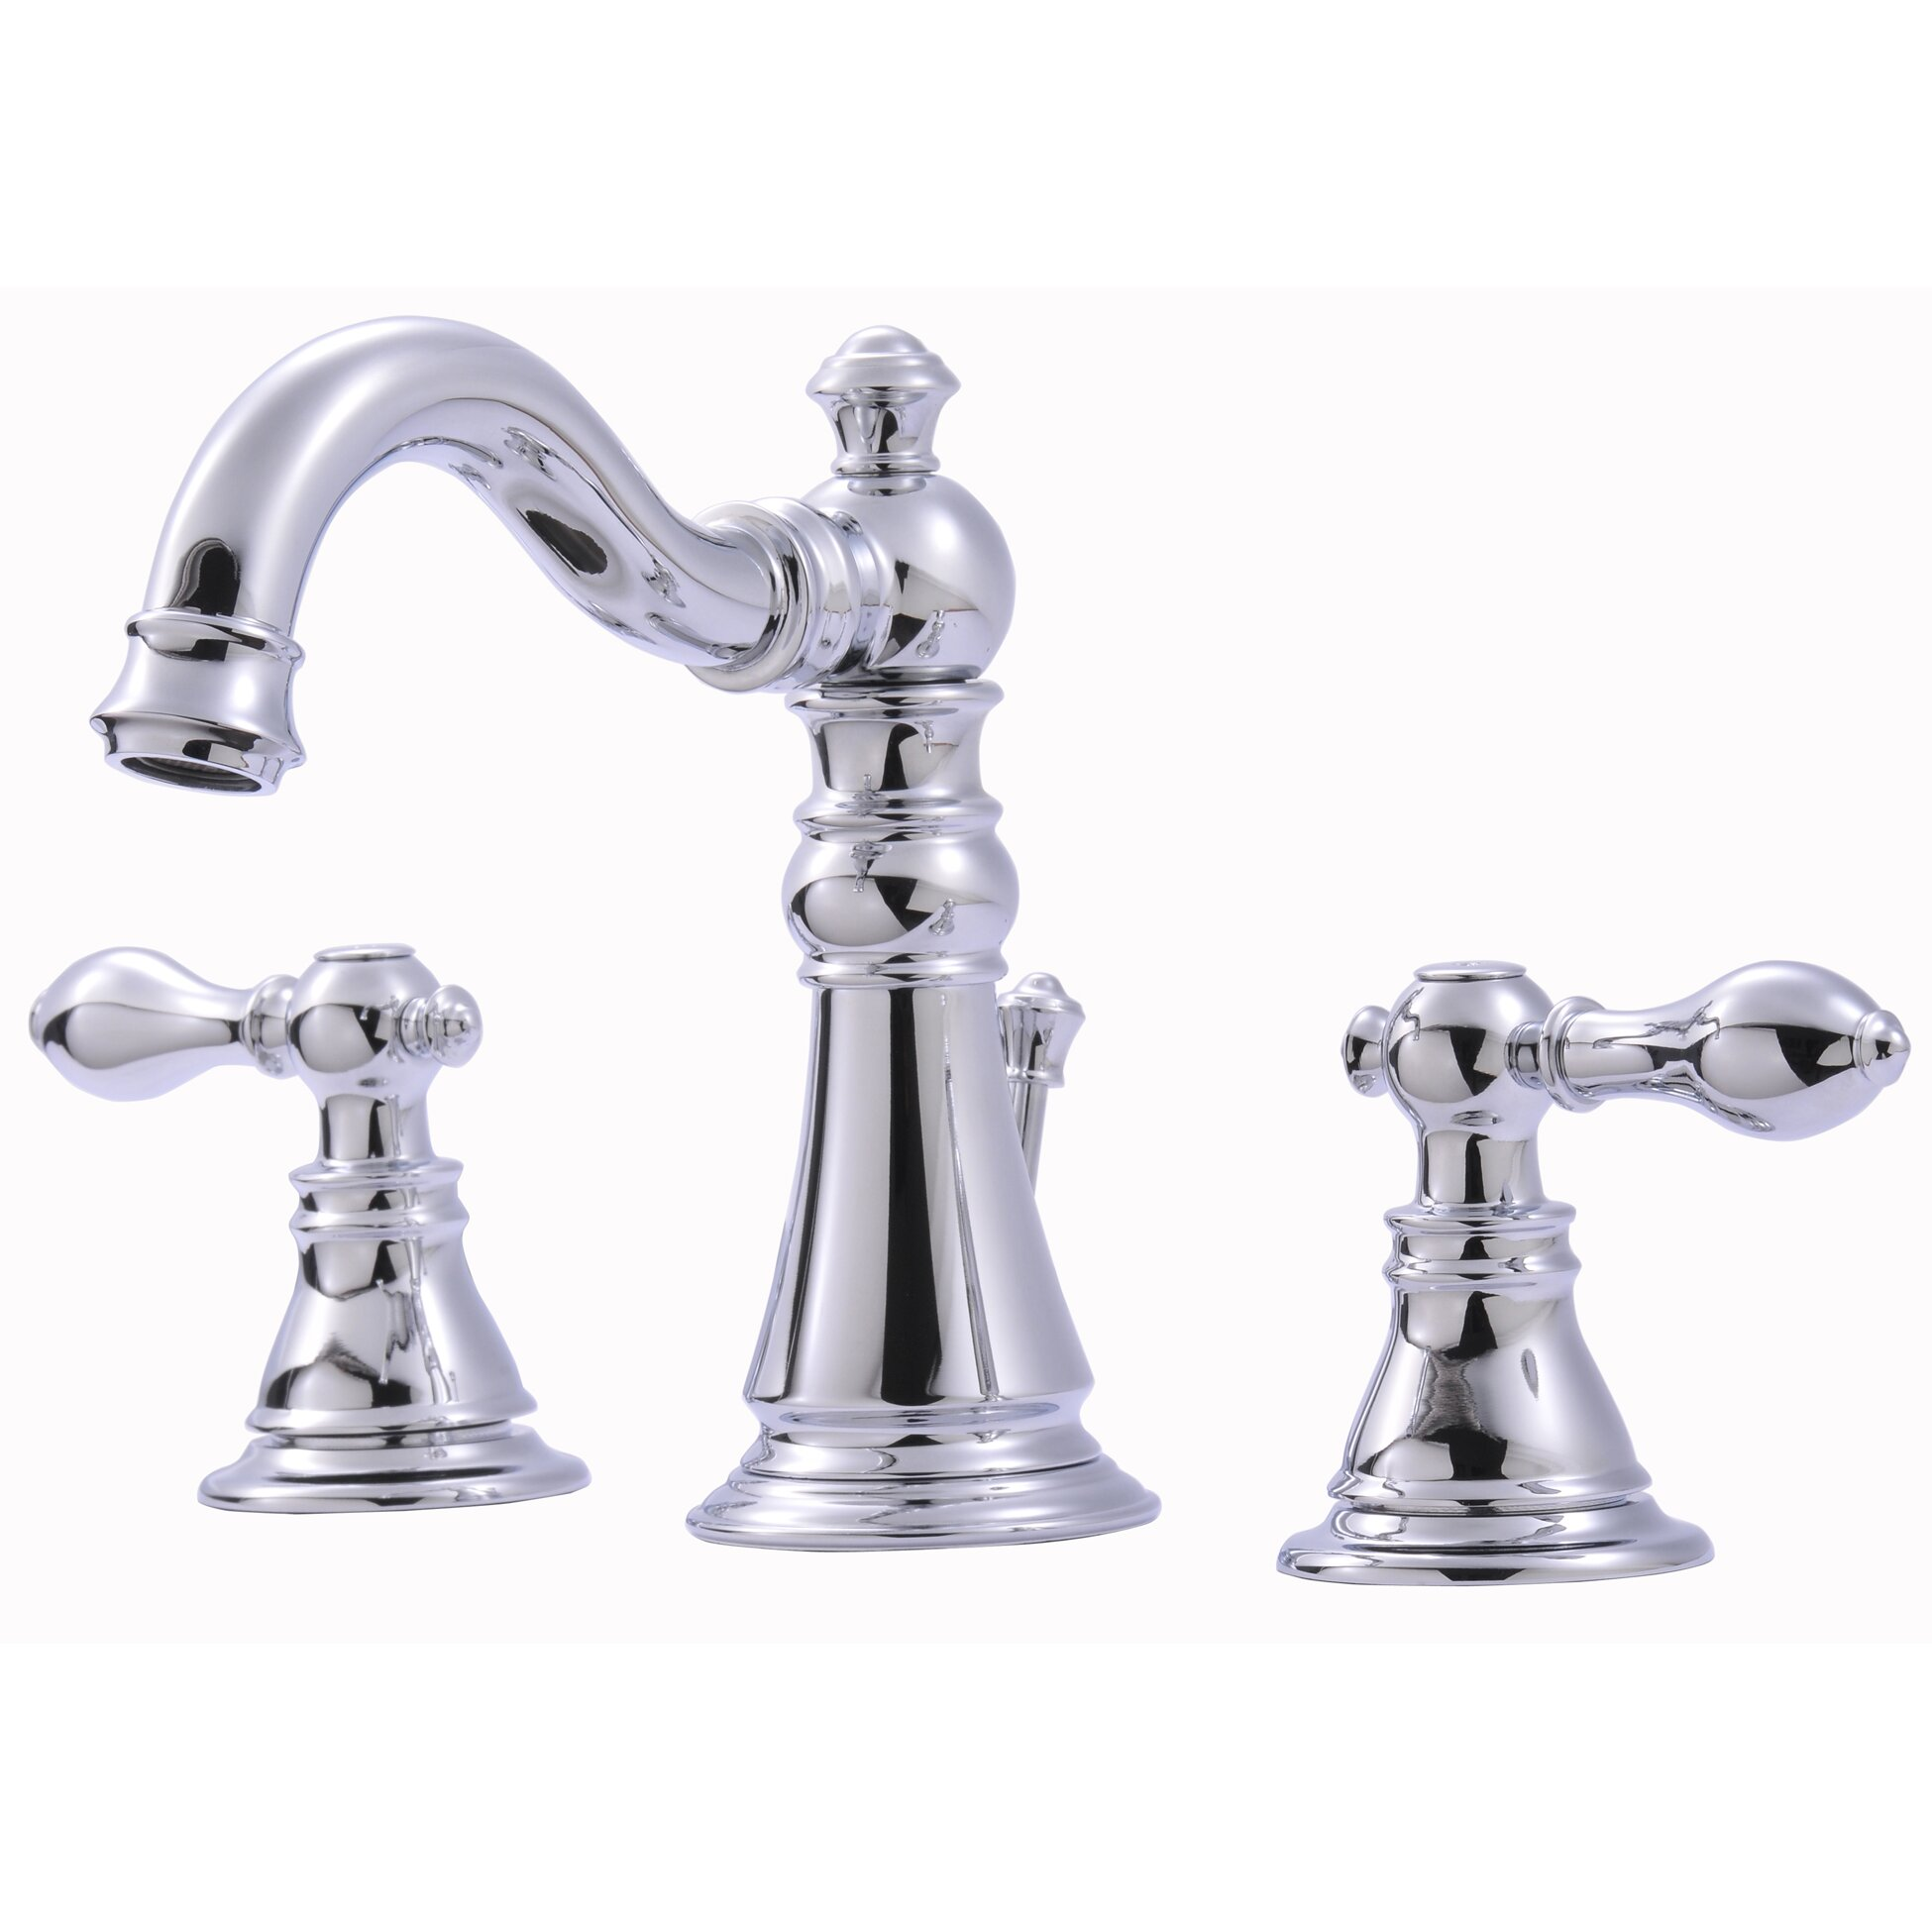 Ultra Faucets Widespread Bathroom Faucet With Double Handles Reviews